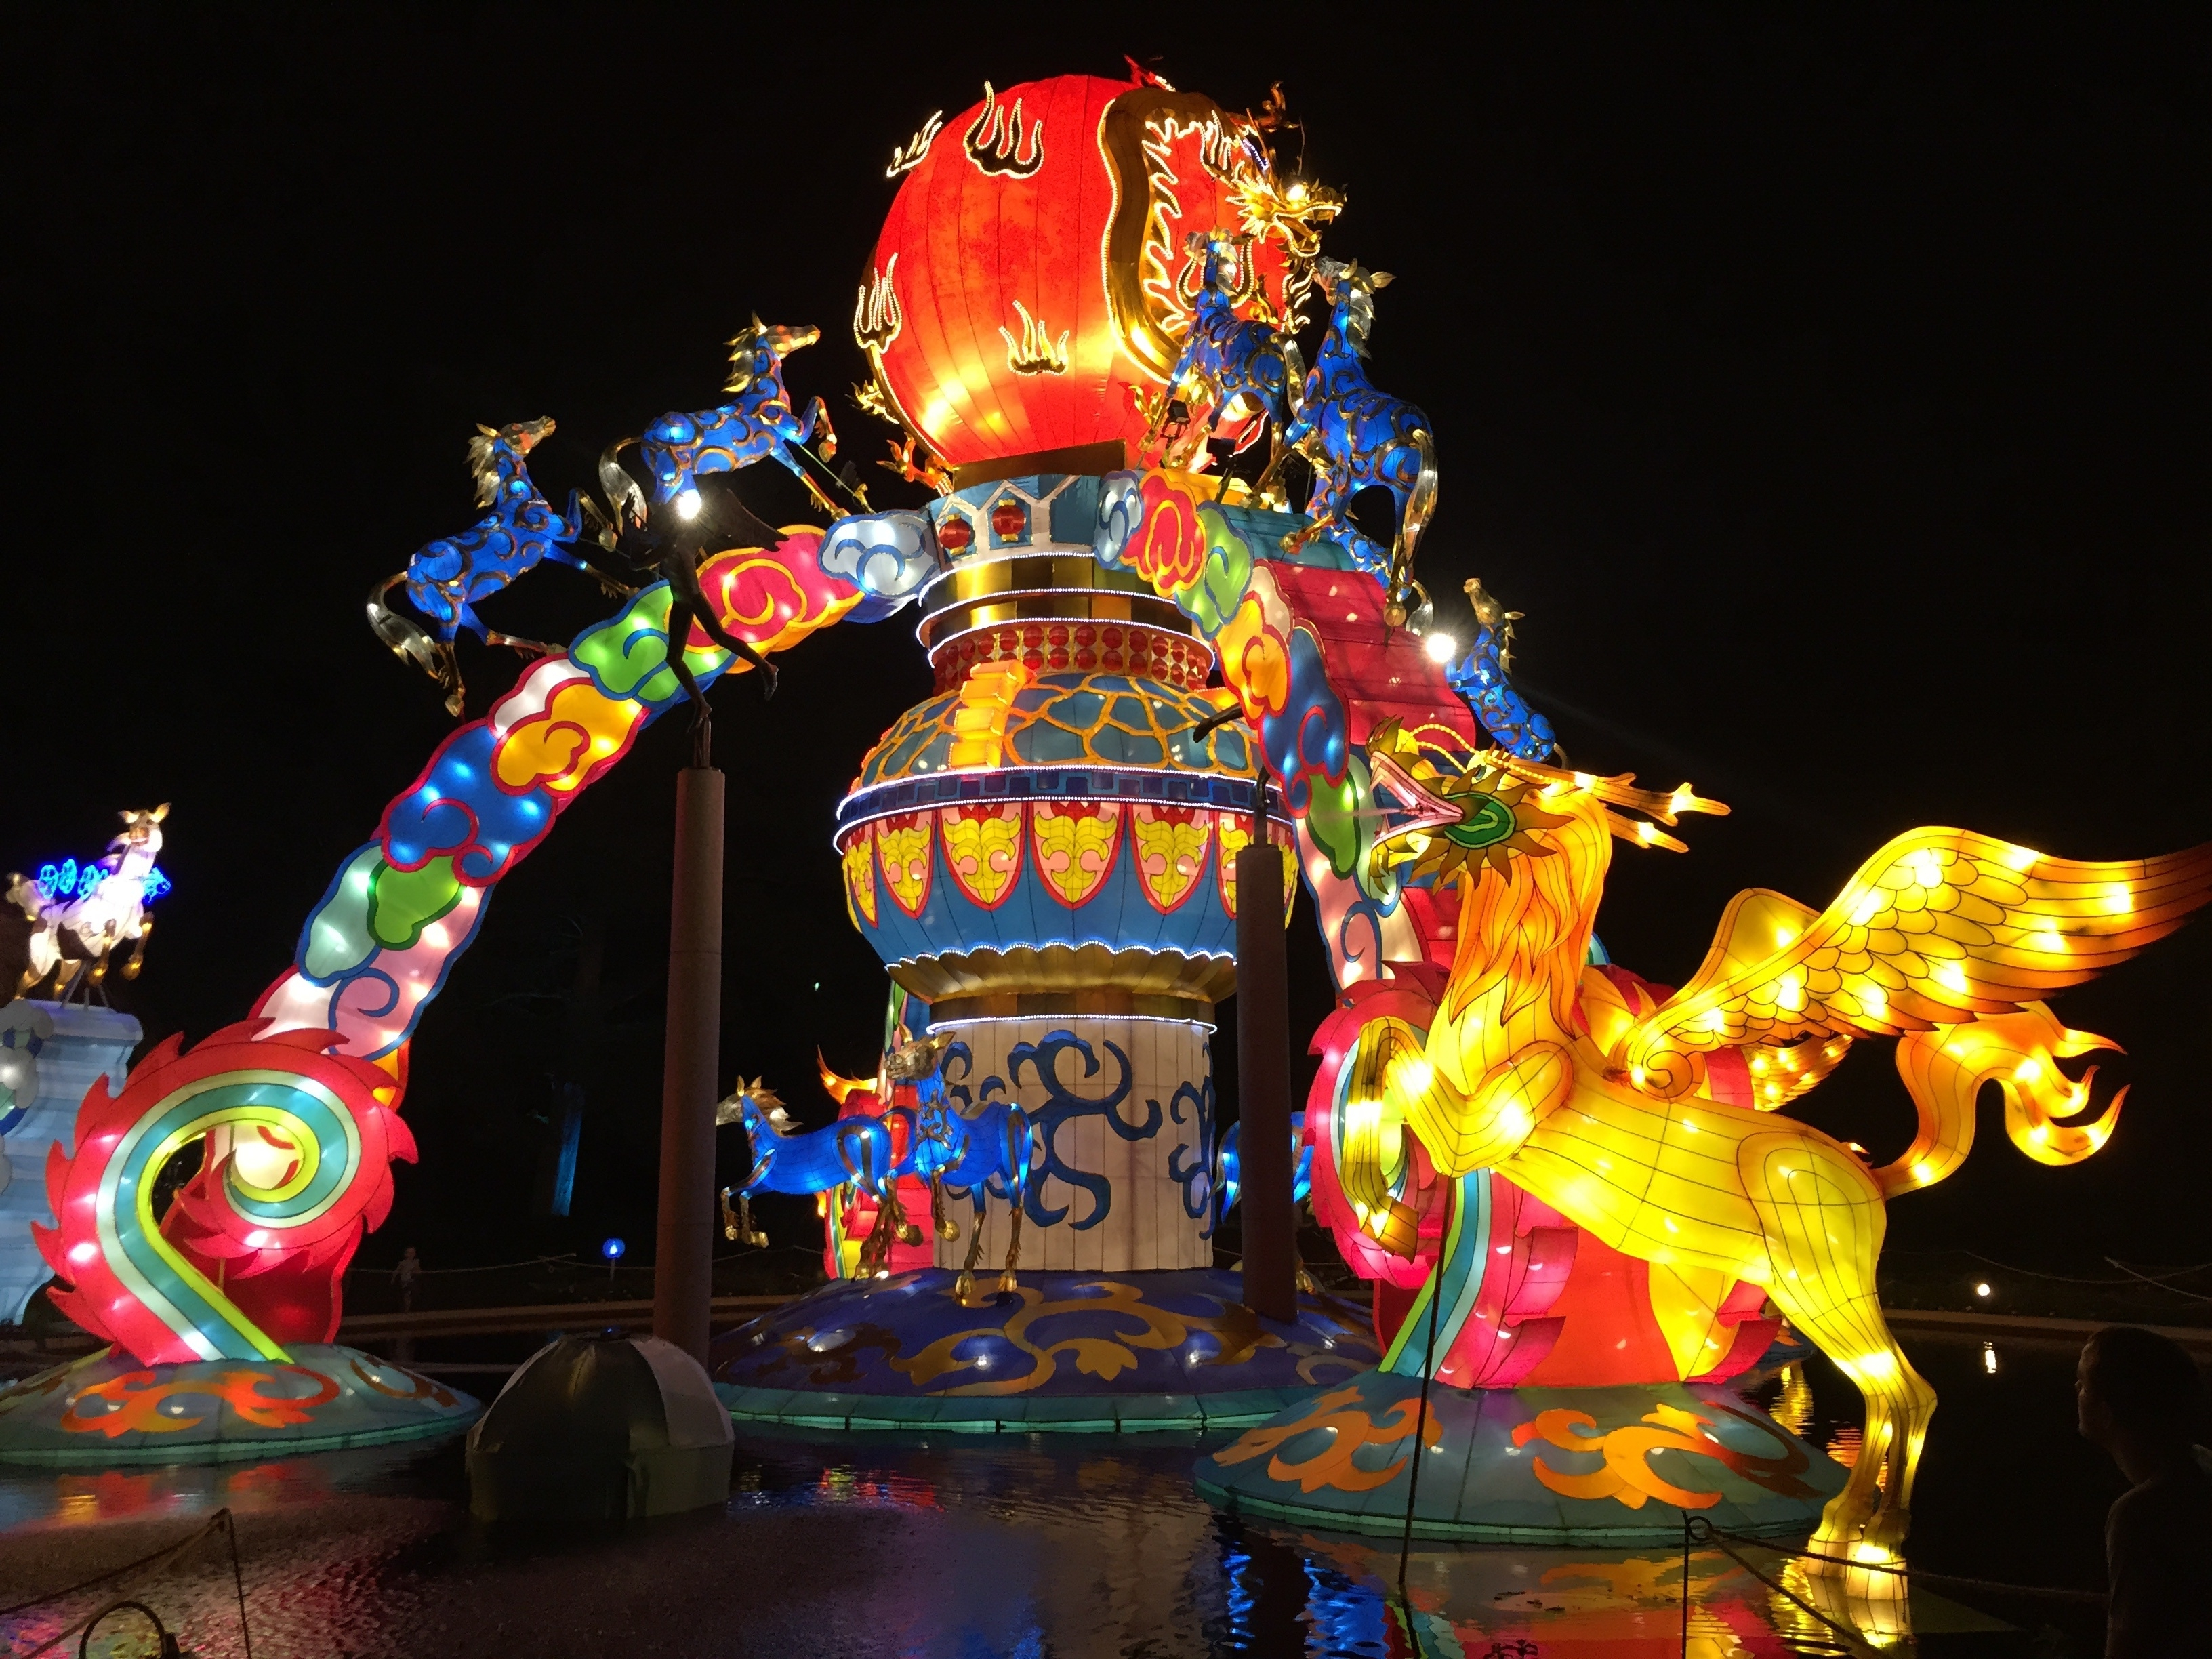 Free Images : Outdoor, Celebration, Golden, Red, Amusement Park In Well Known Outdoor Oriental Lanterns (View 2 of 20)